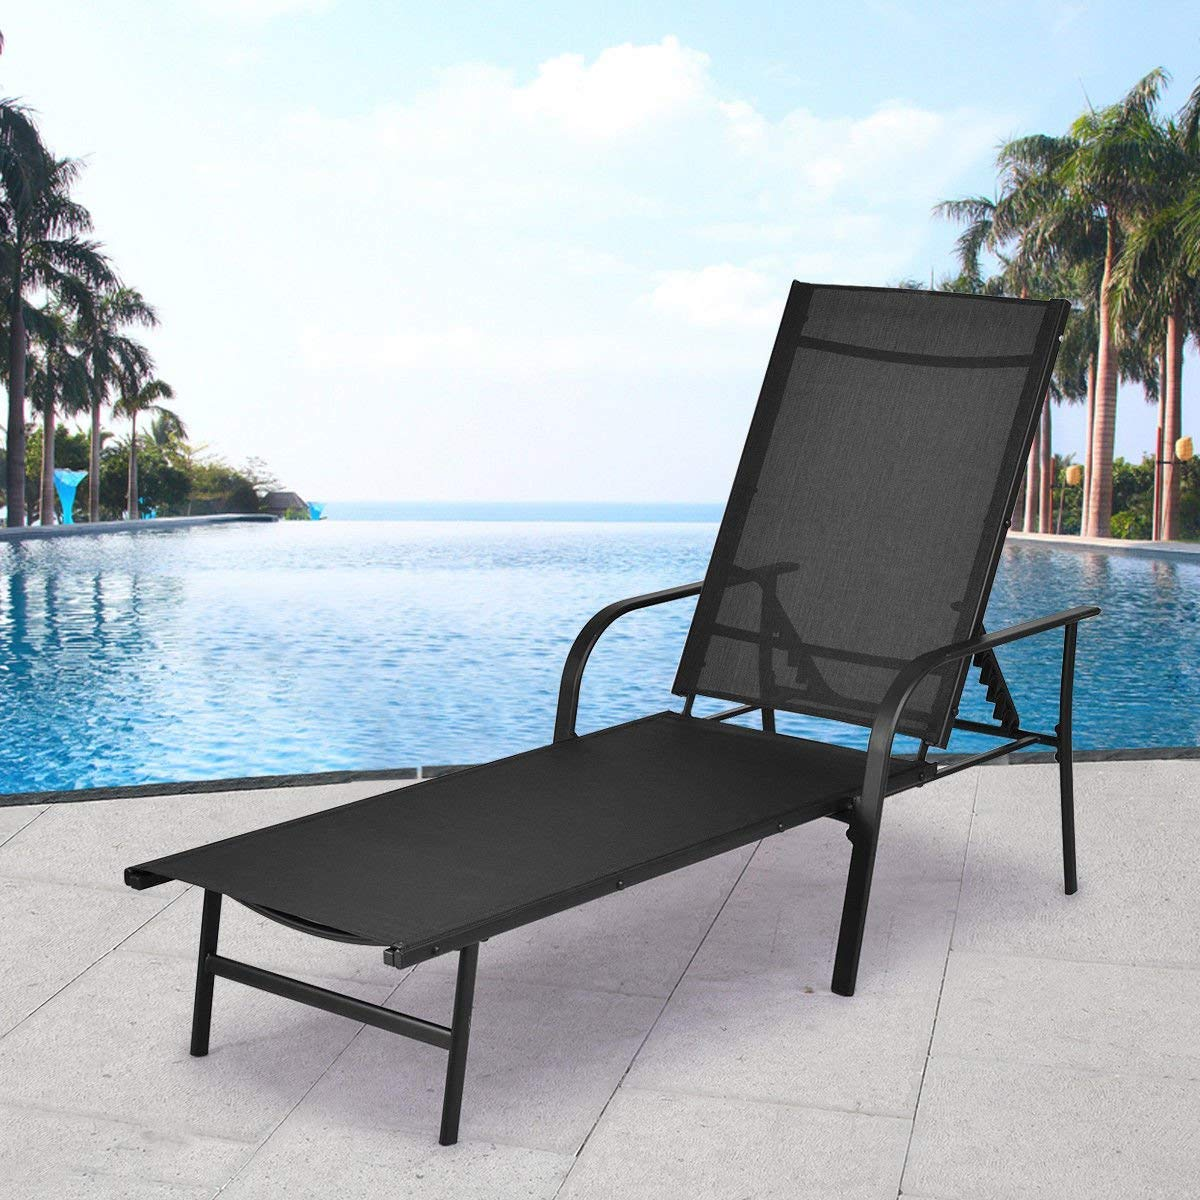 Amazon.com: Giantex - Silla reclinable para patio con ...